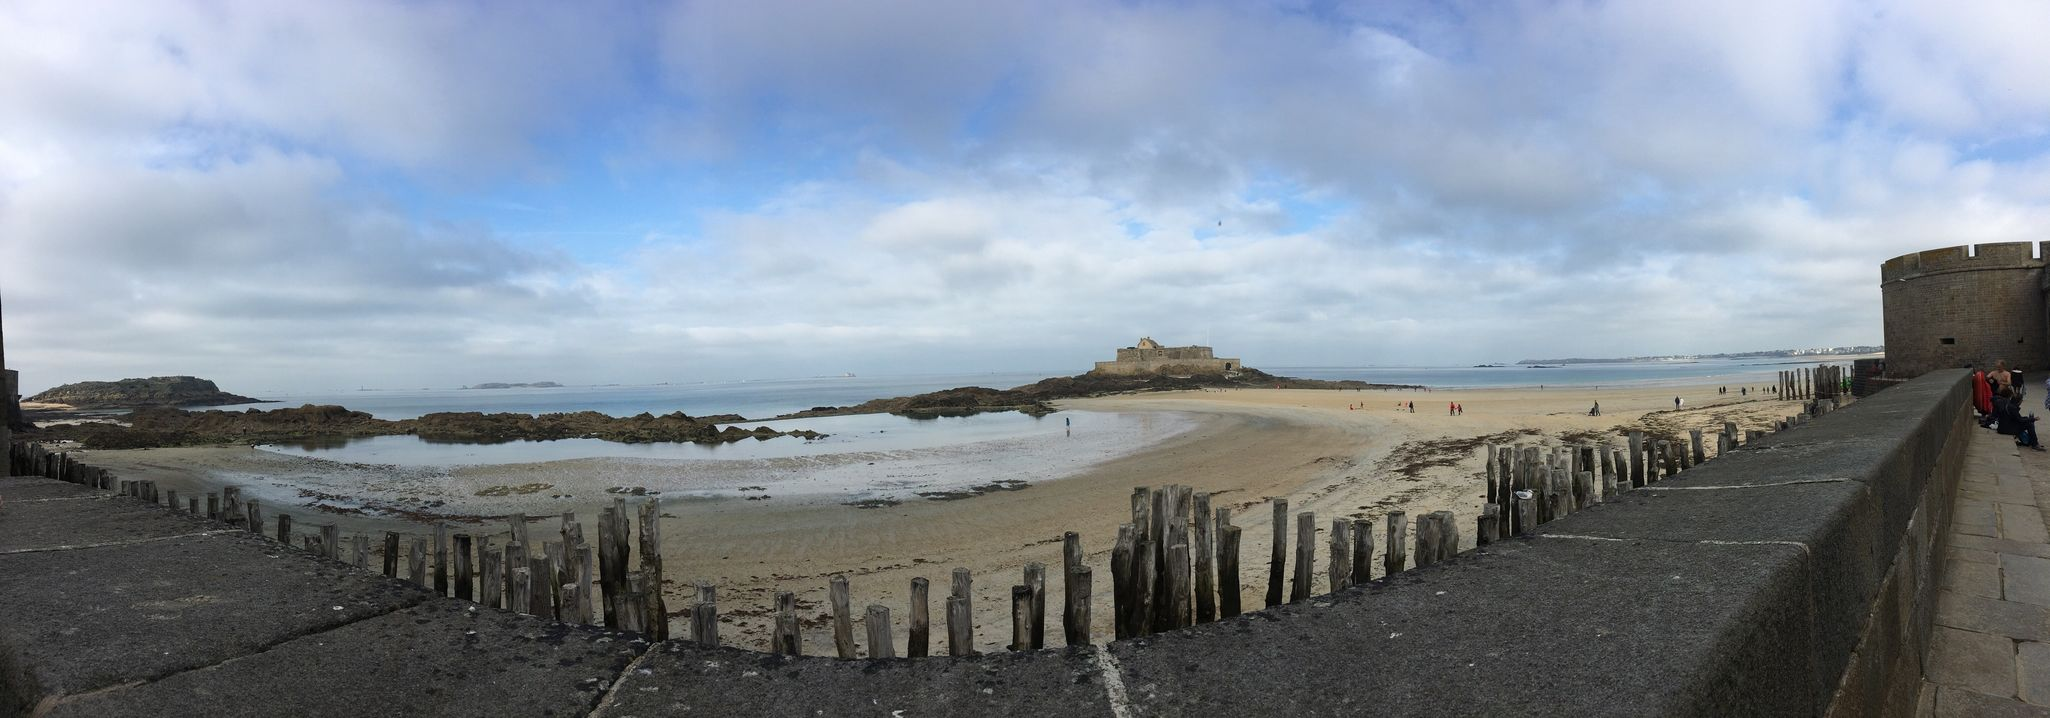 Saintmalo Visite Sea And Sky Oiseaux LaMer Birds Mar First Eyeem Photo Magnifique Panorama Panoramic Photography 360 Panorama Canon